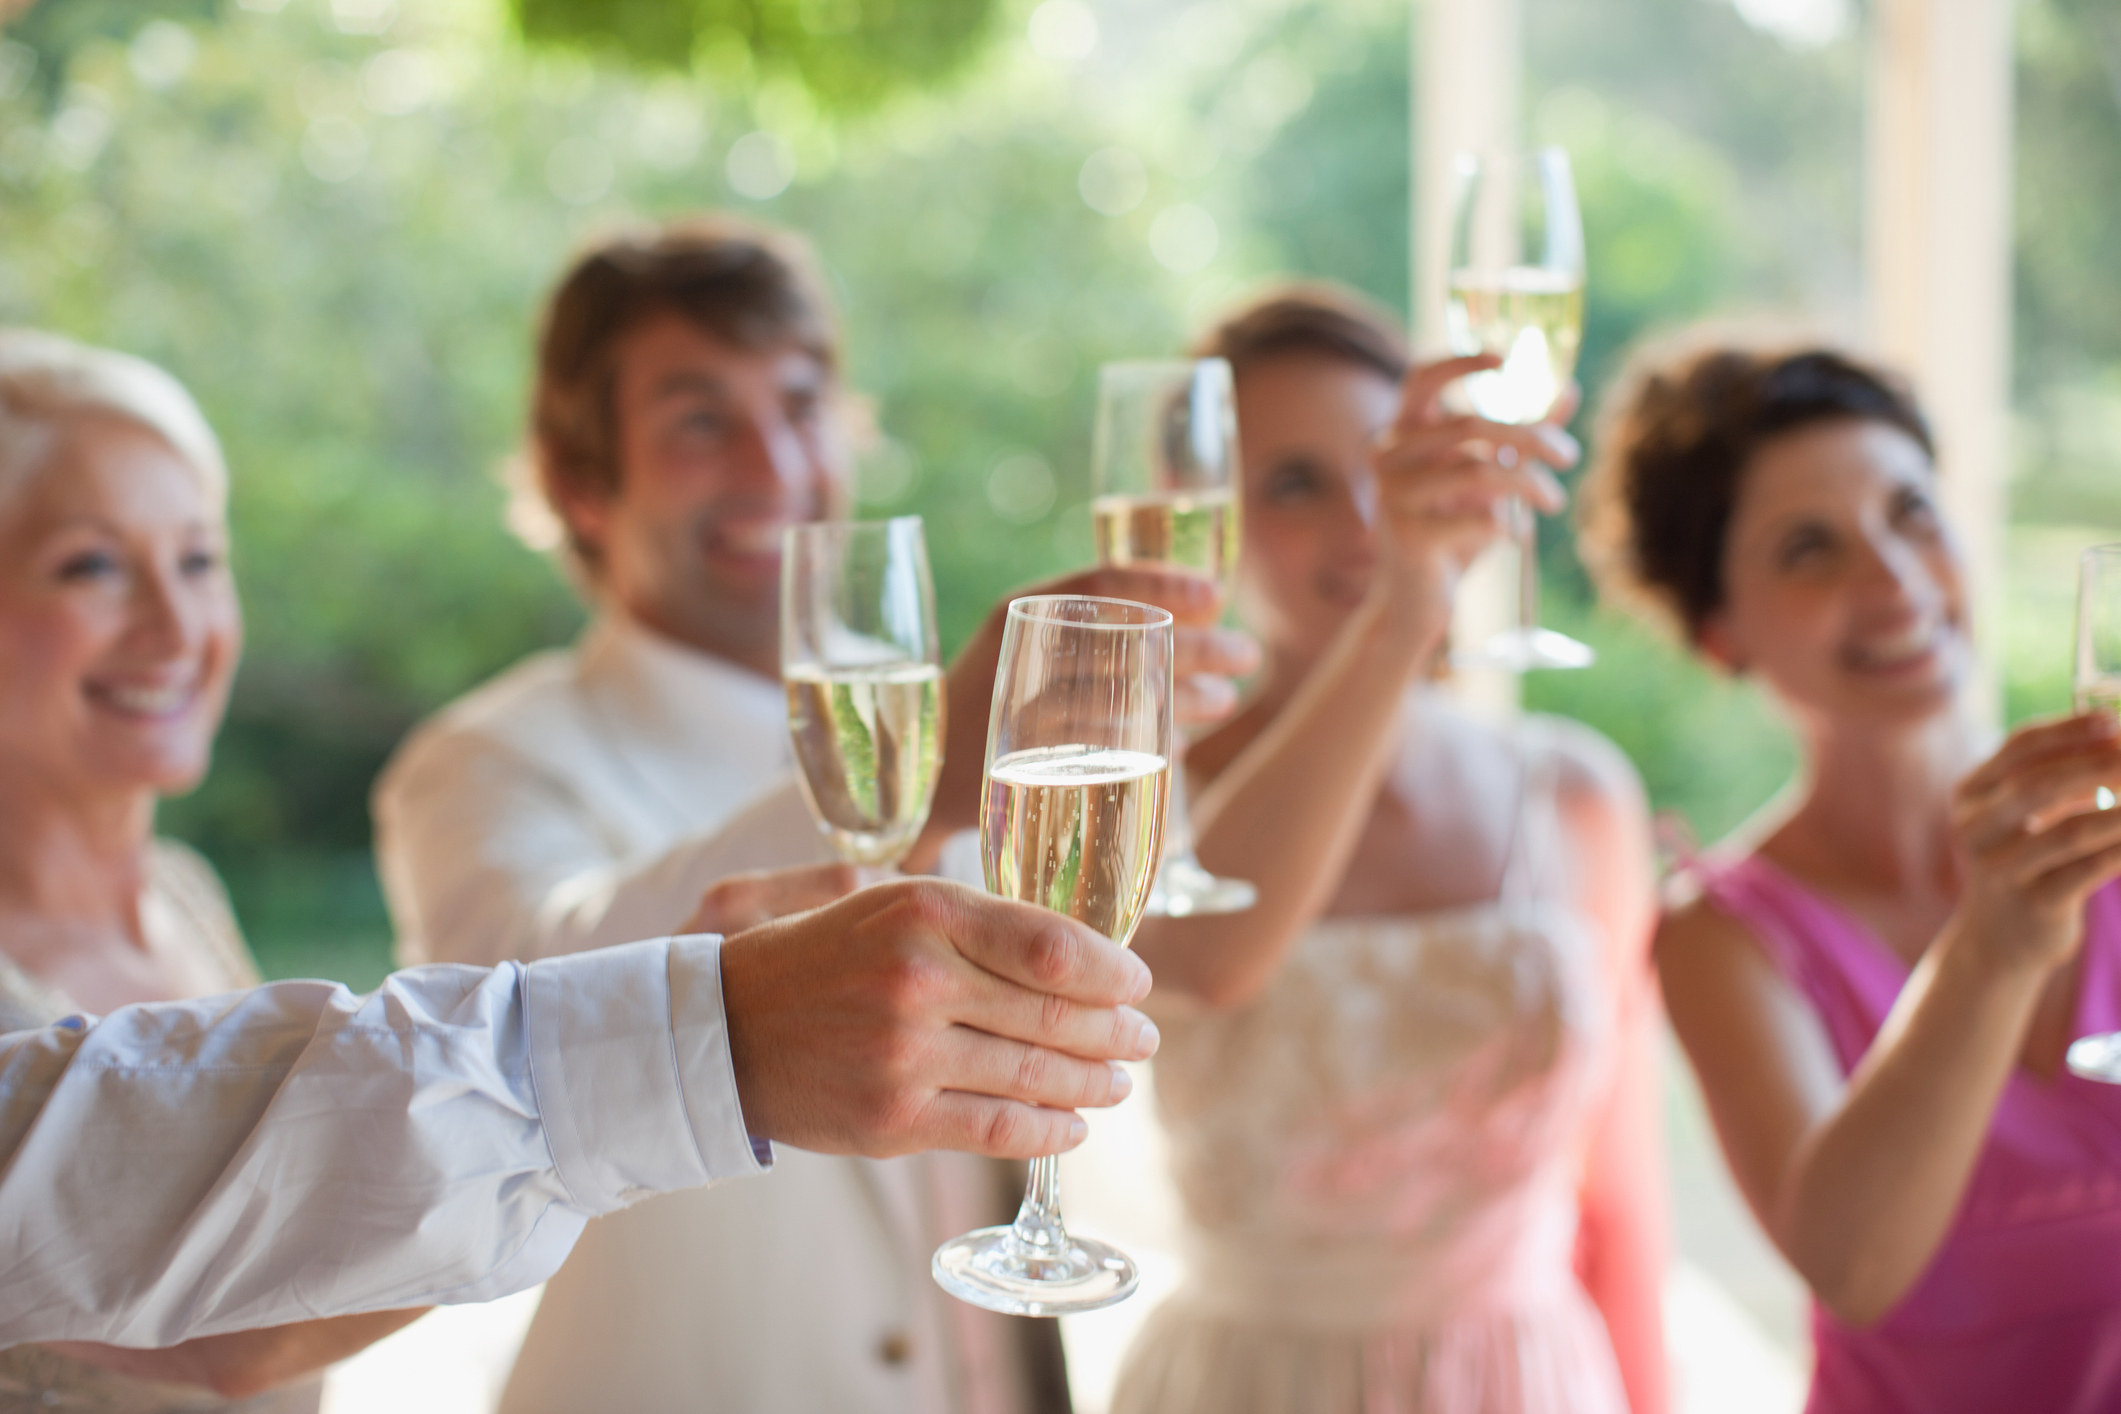 Wedding guests raise their glasses for a toast